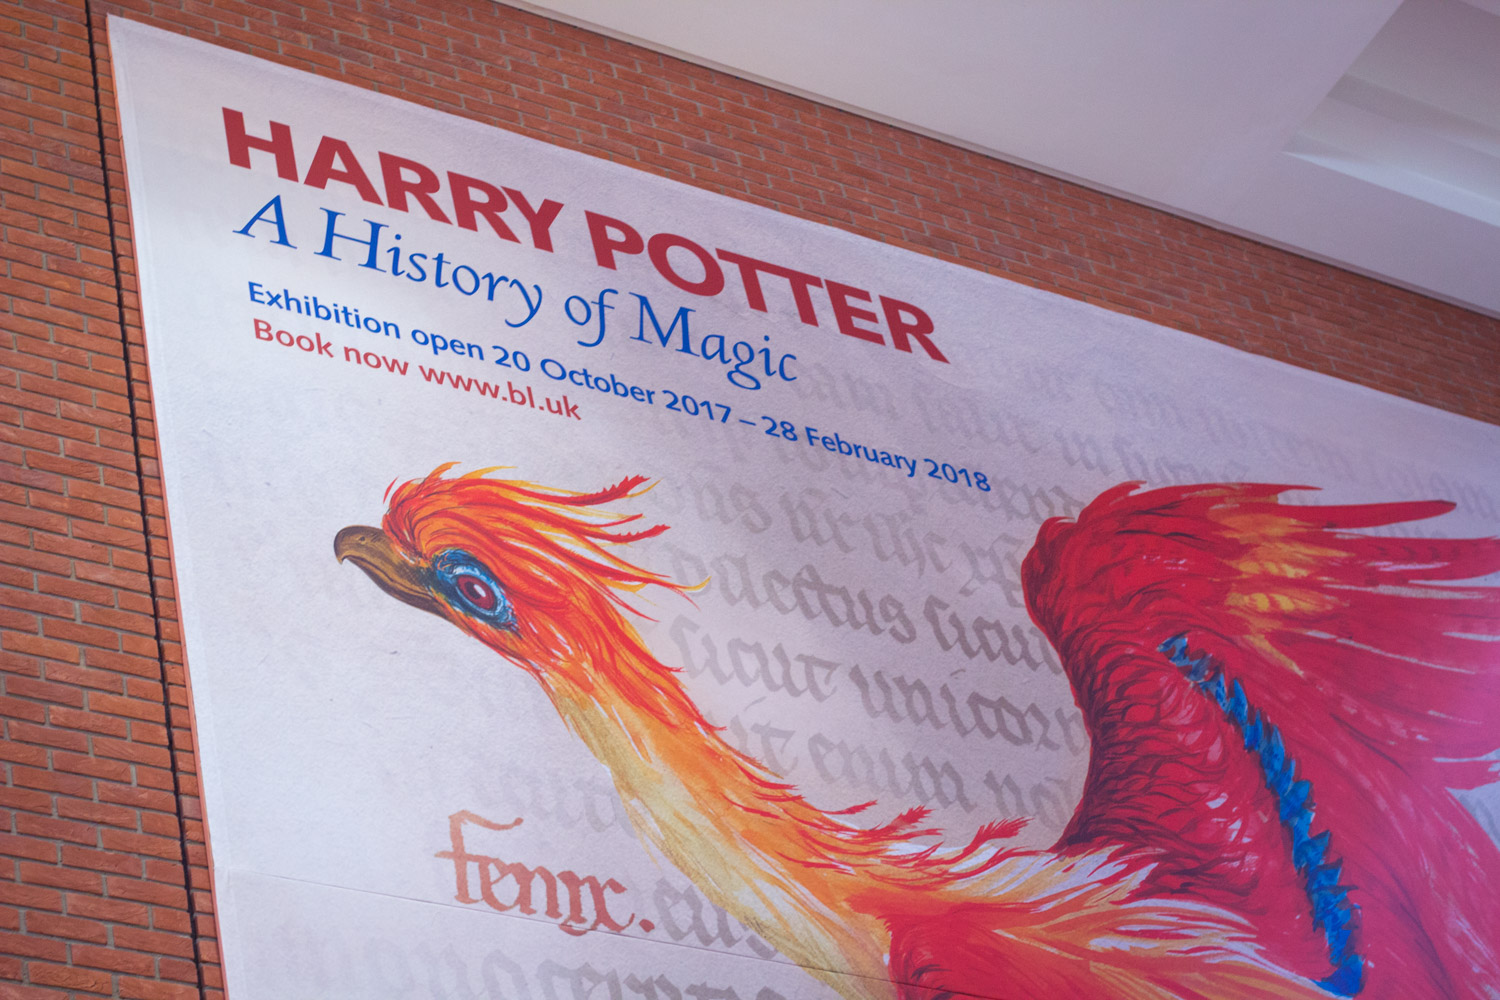 Harry Potter a History of Magic Exhibit in the British Library